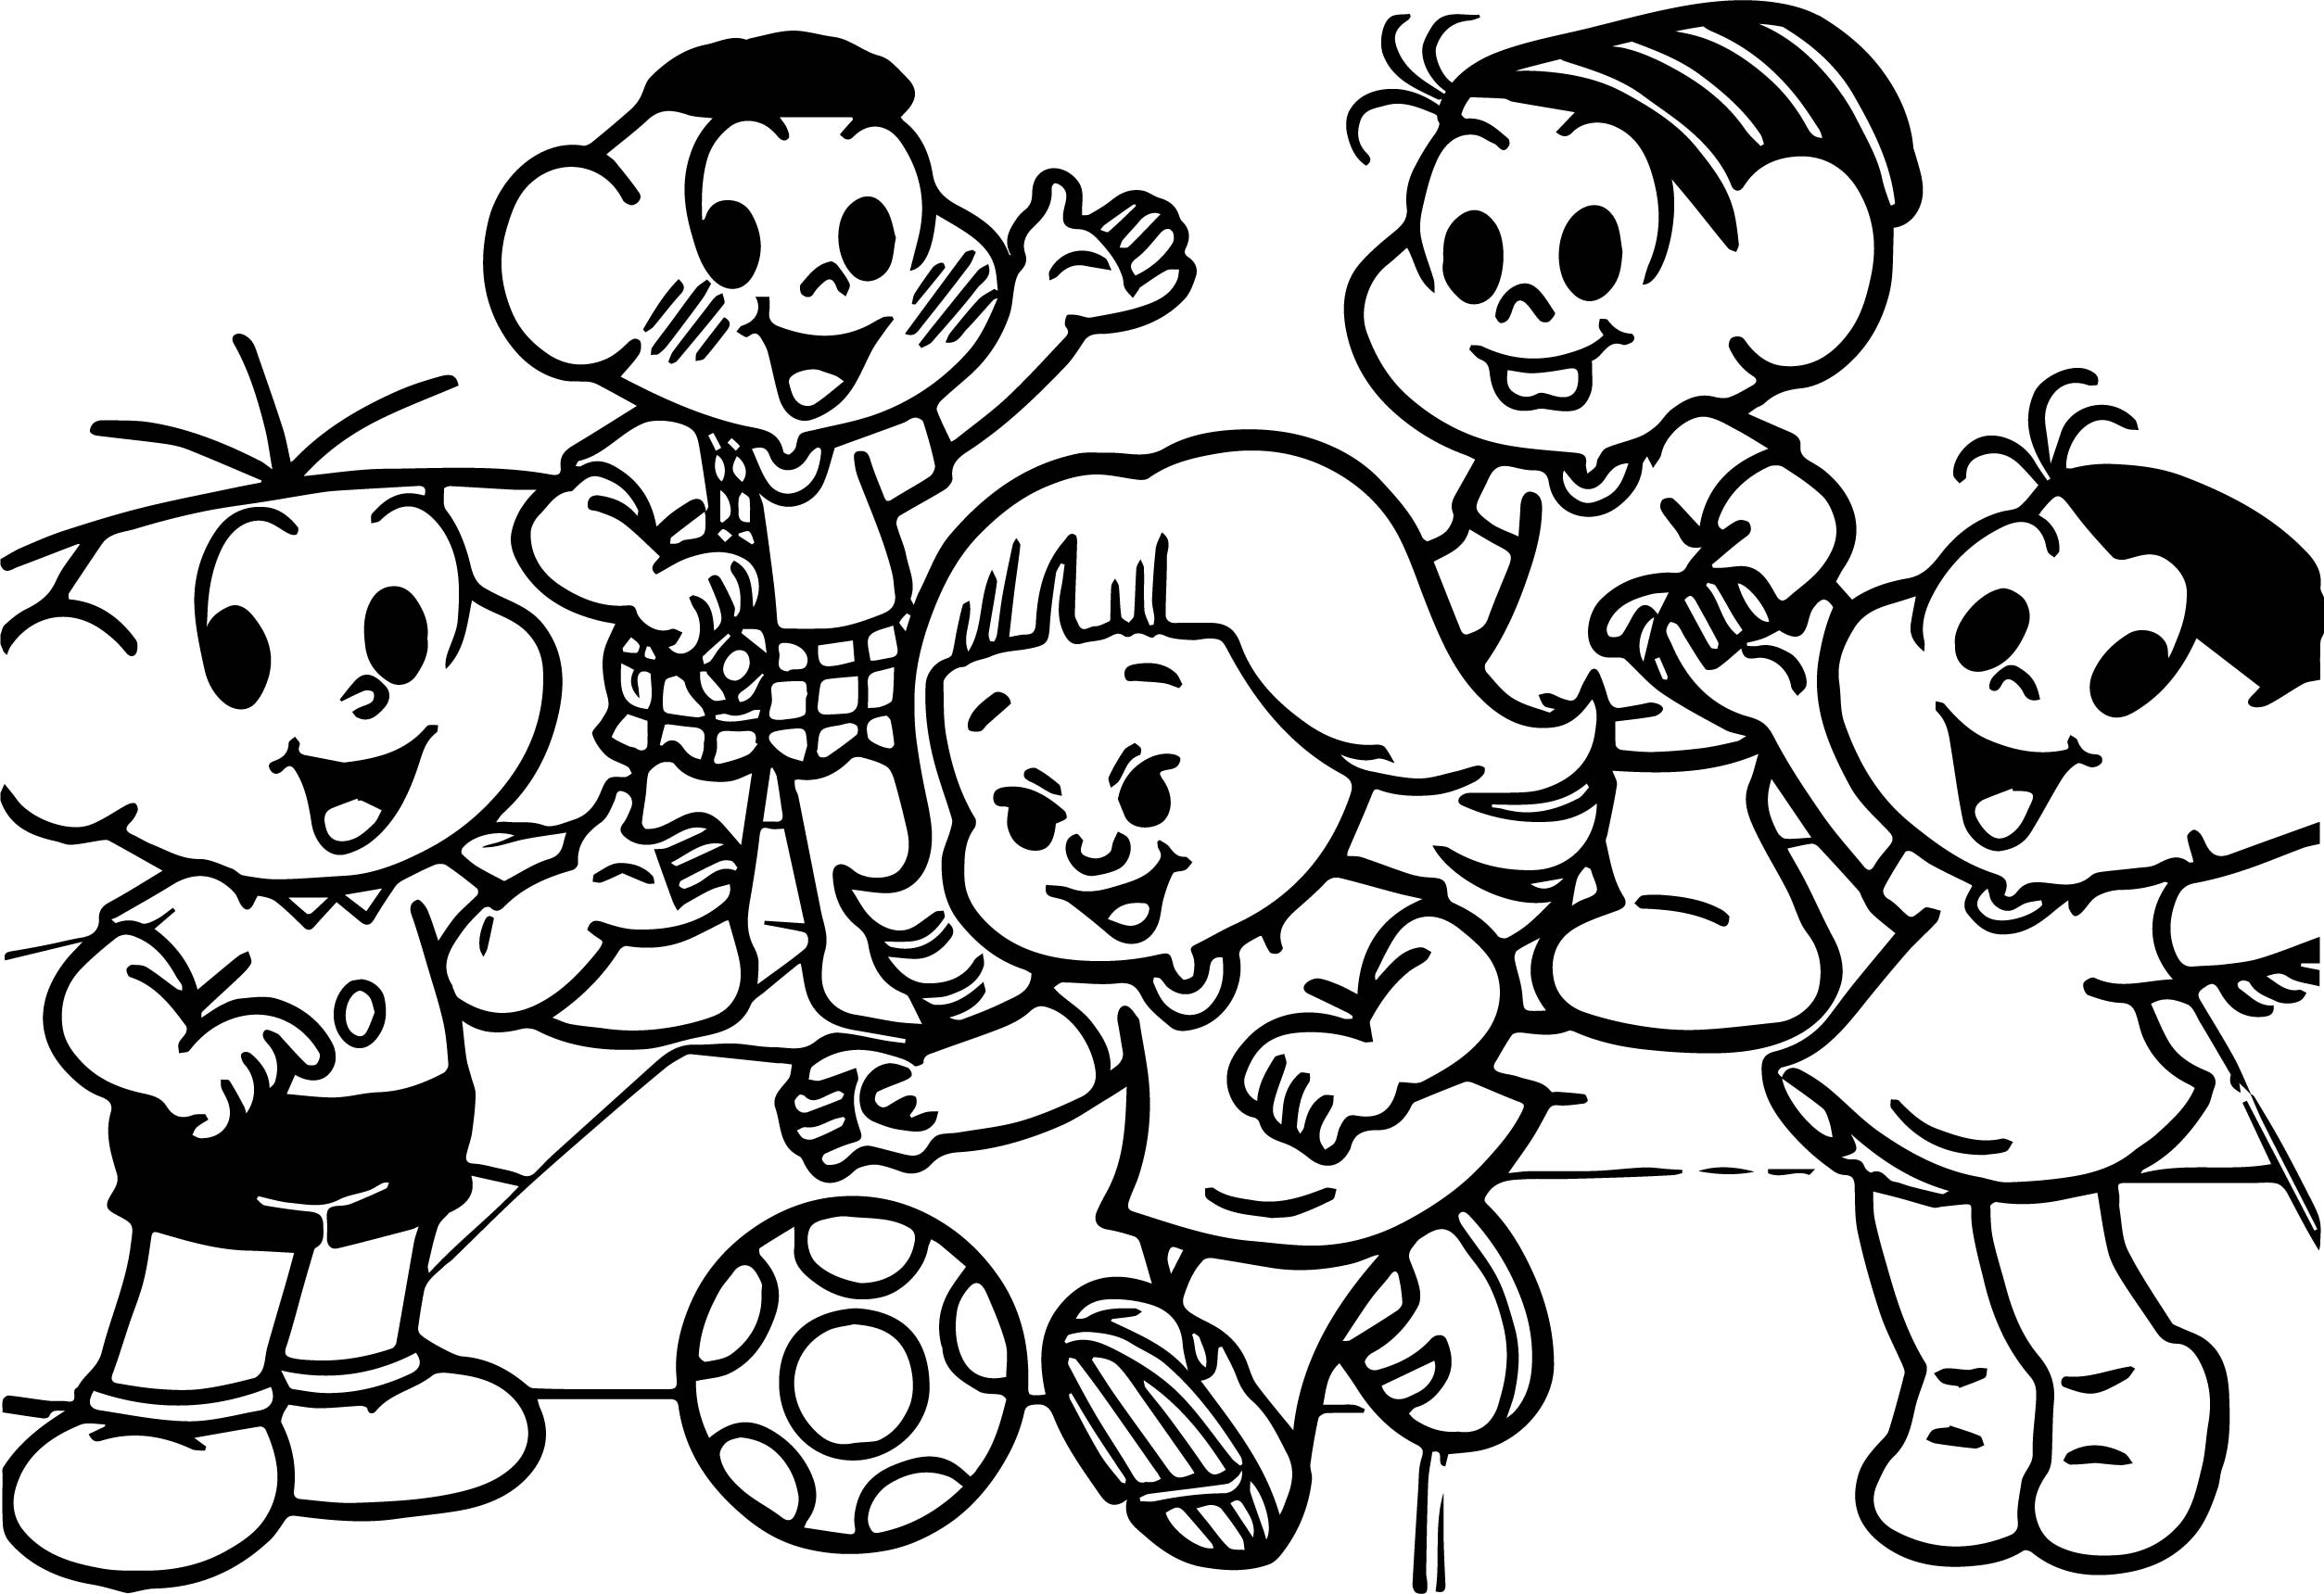 Featured Inclusion Social Turma Da Monica Coloring Page